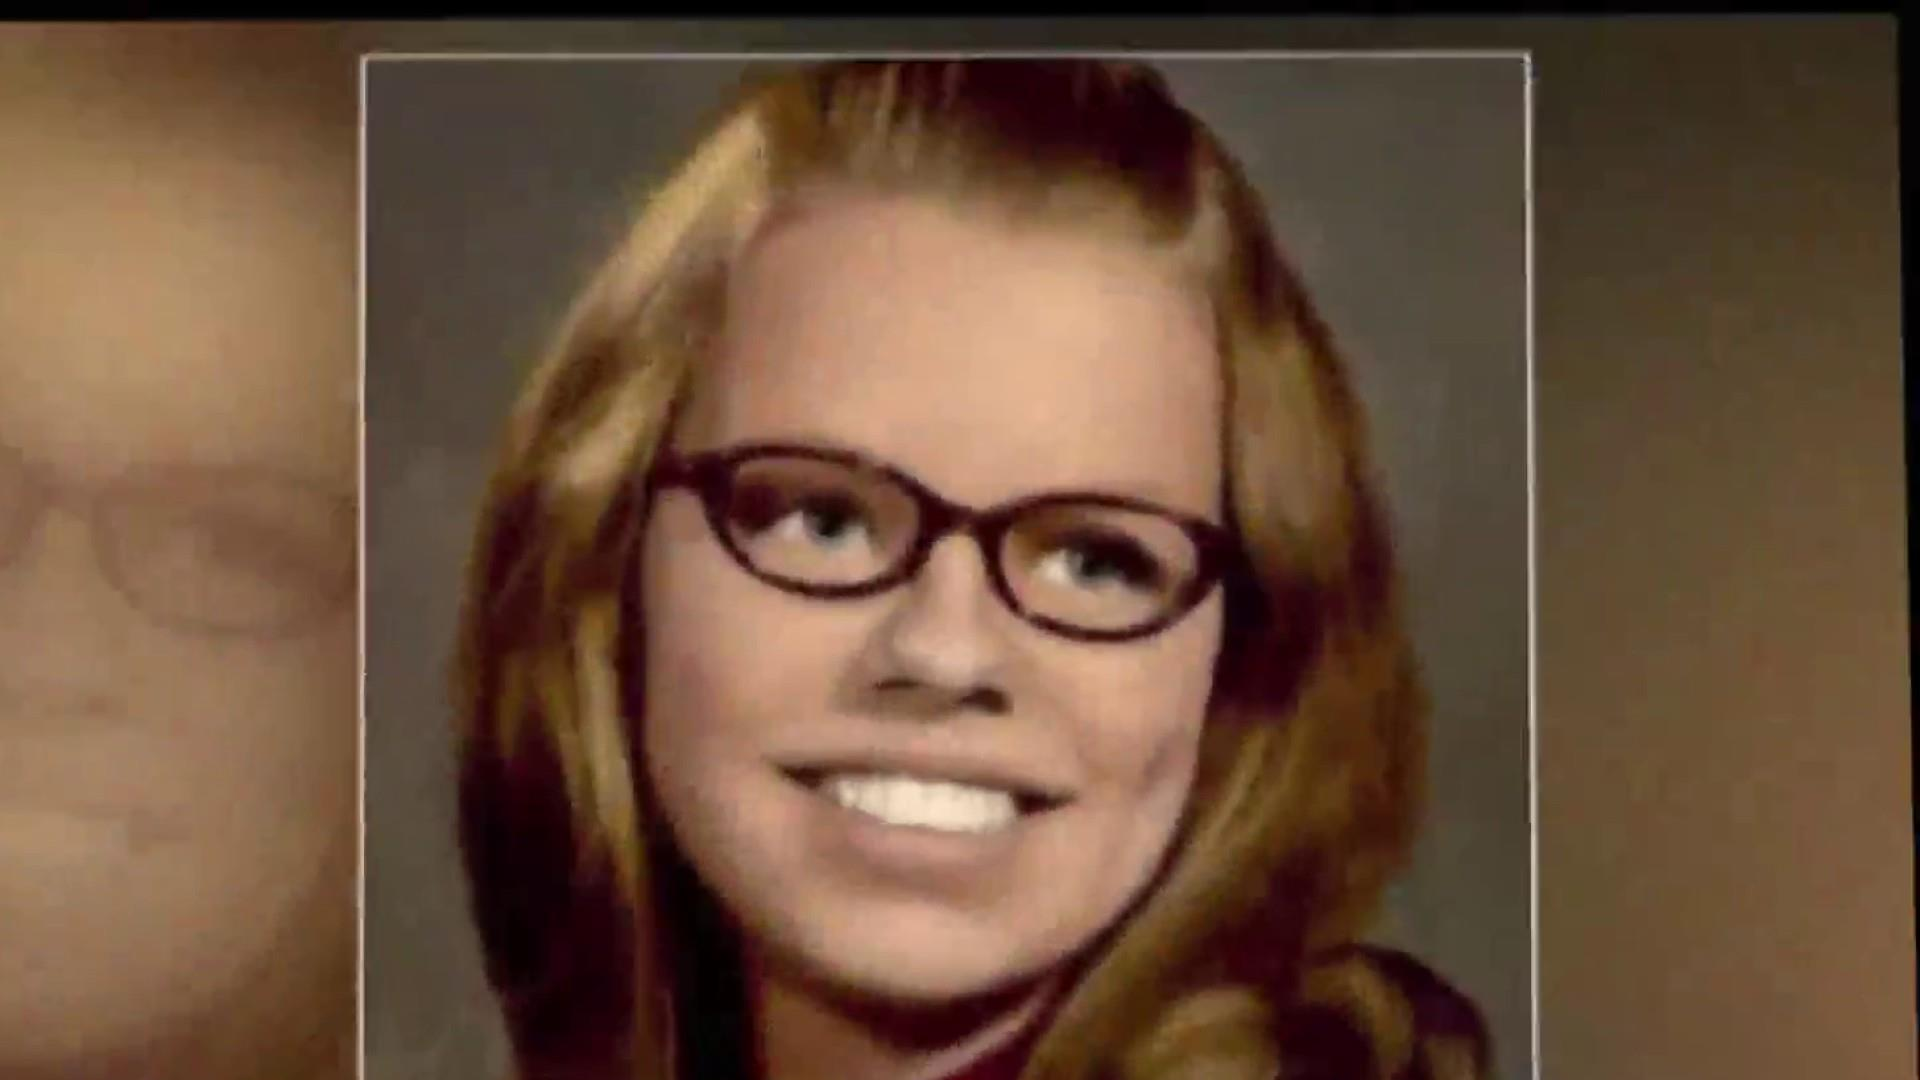 Indiana police say 47-year-old murder of college student Pamela Milam solved